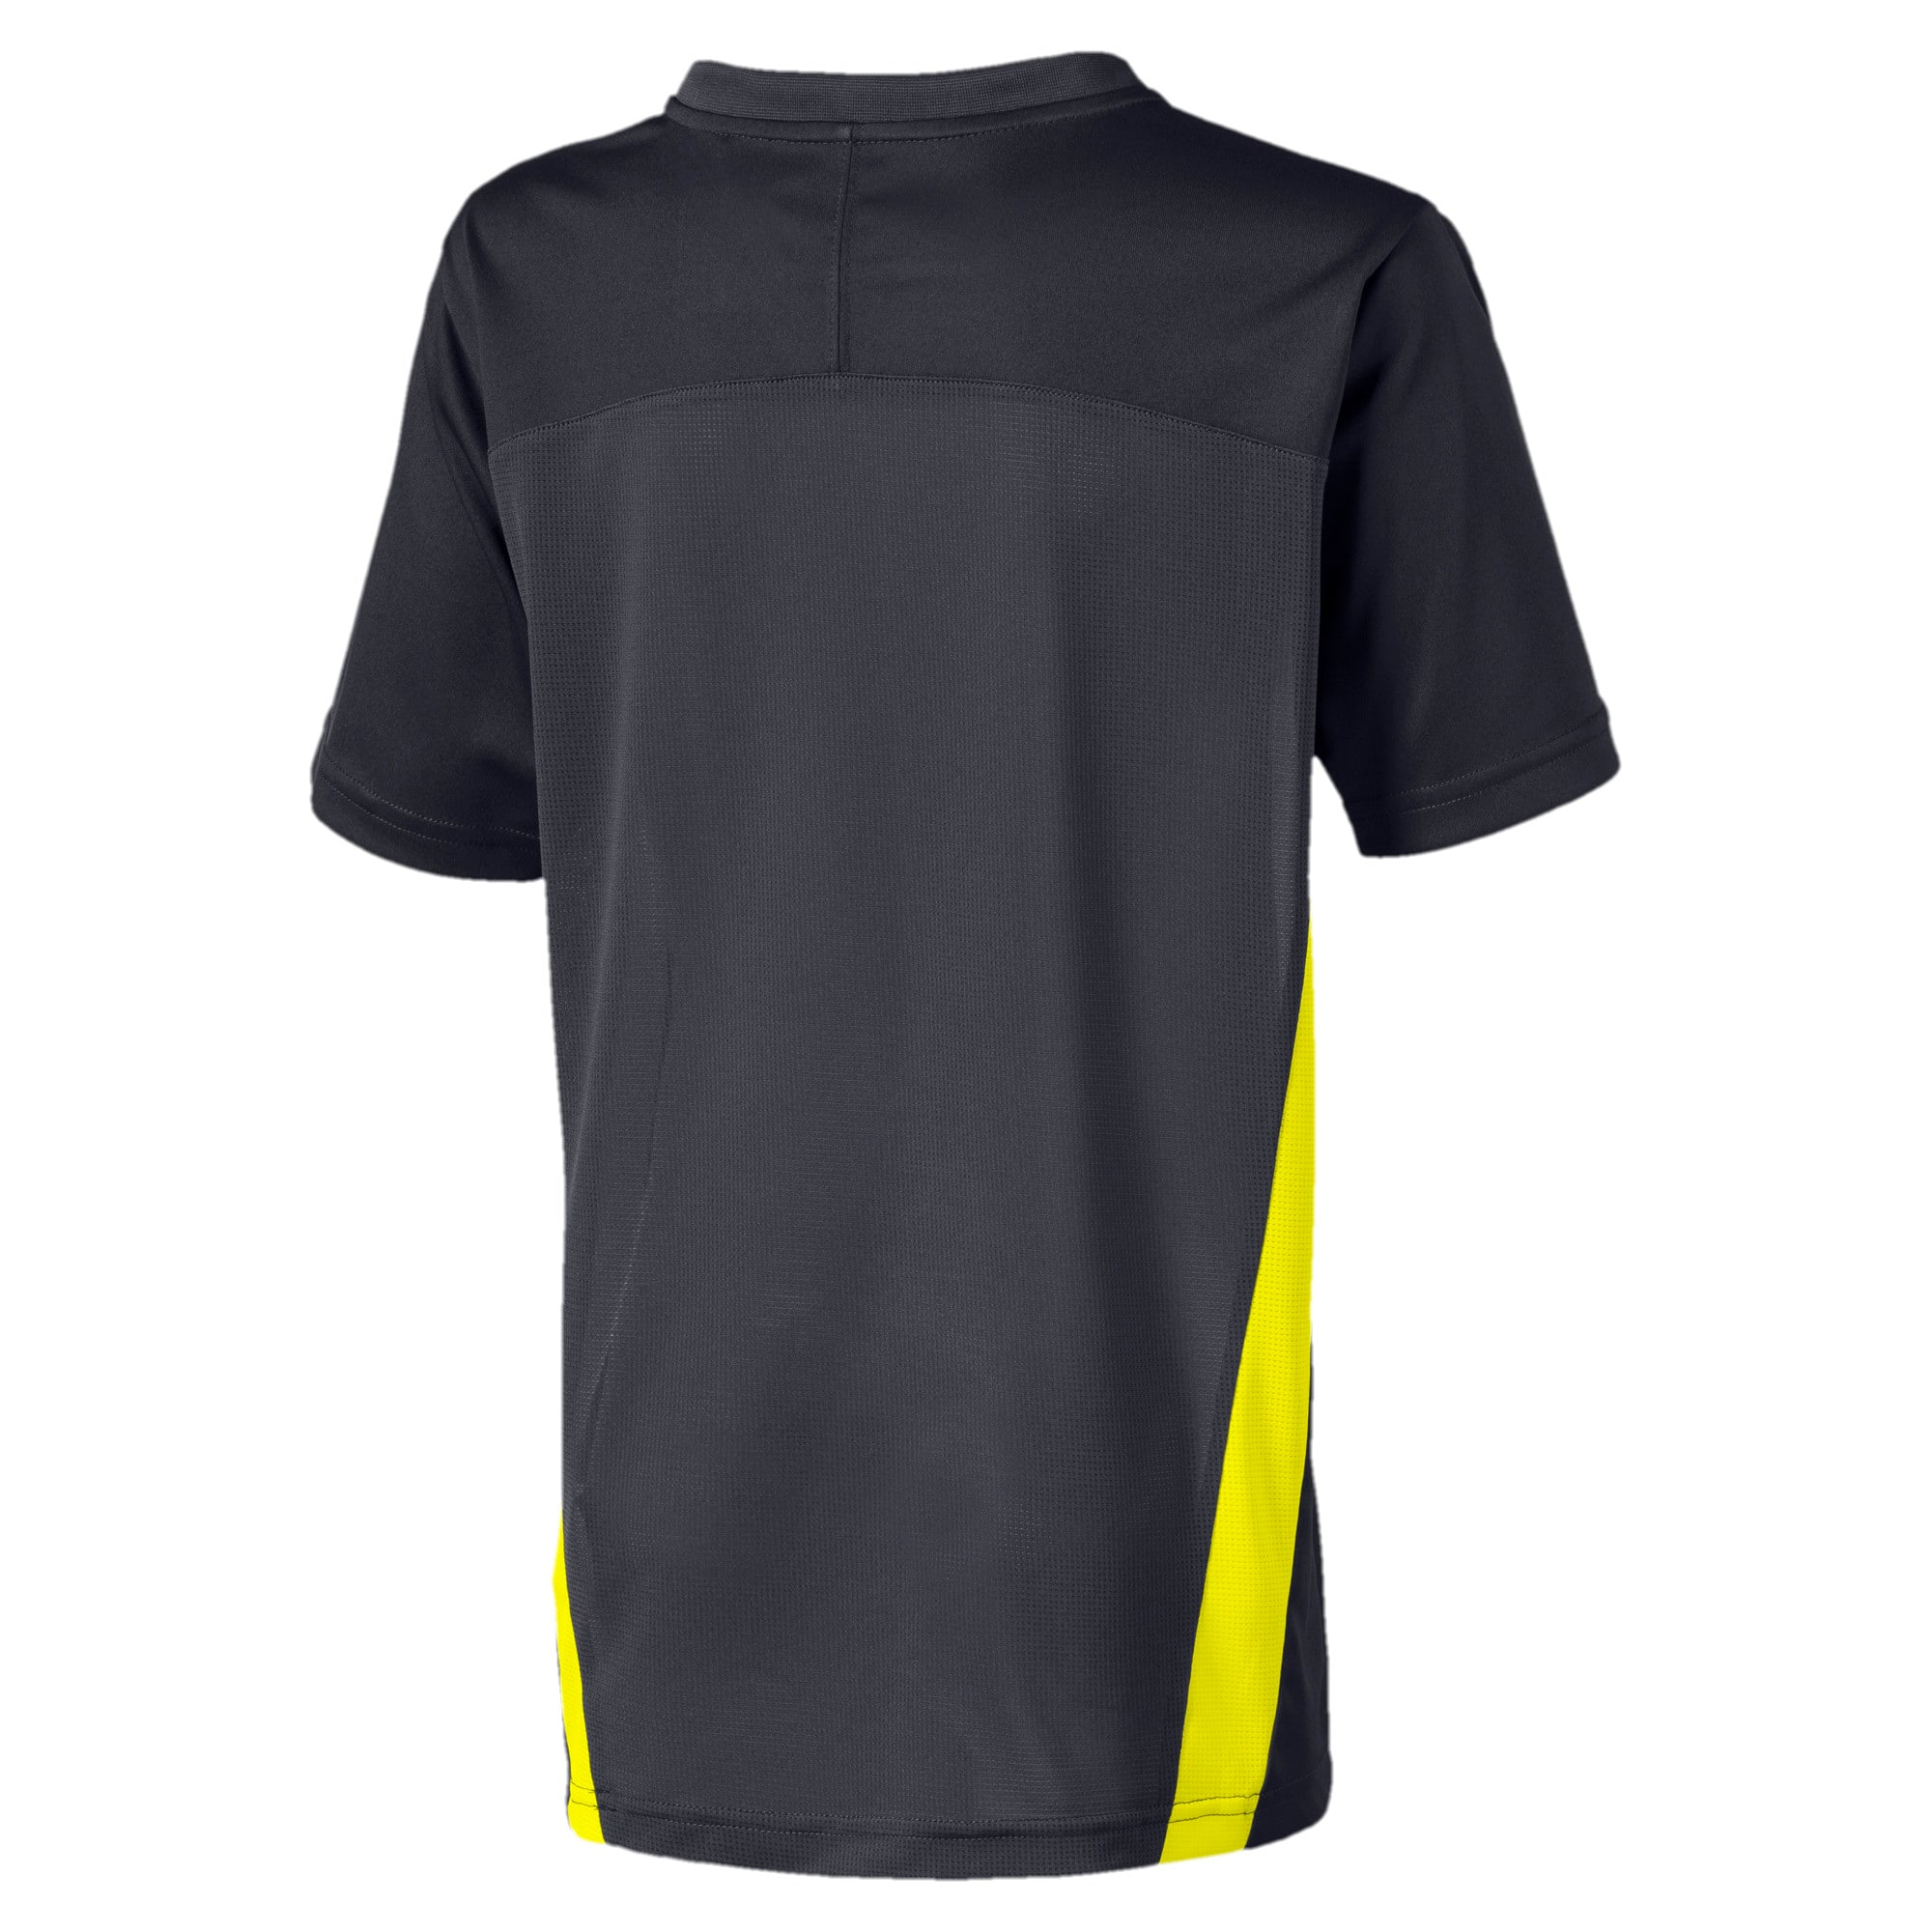 ftblNXT Boys' Training Tee, Ebony-Yellow Alert, large